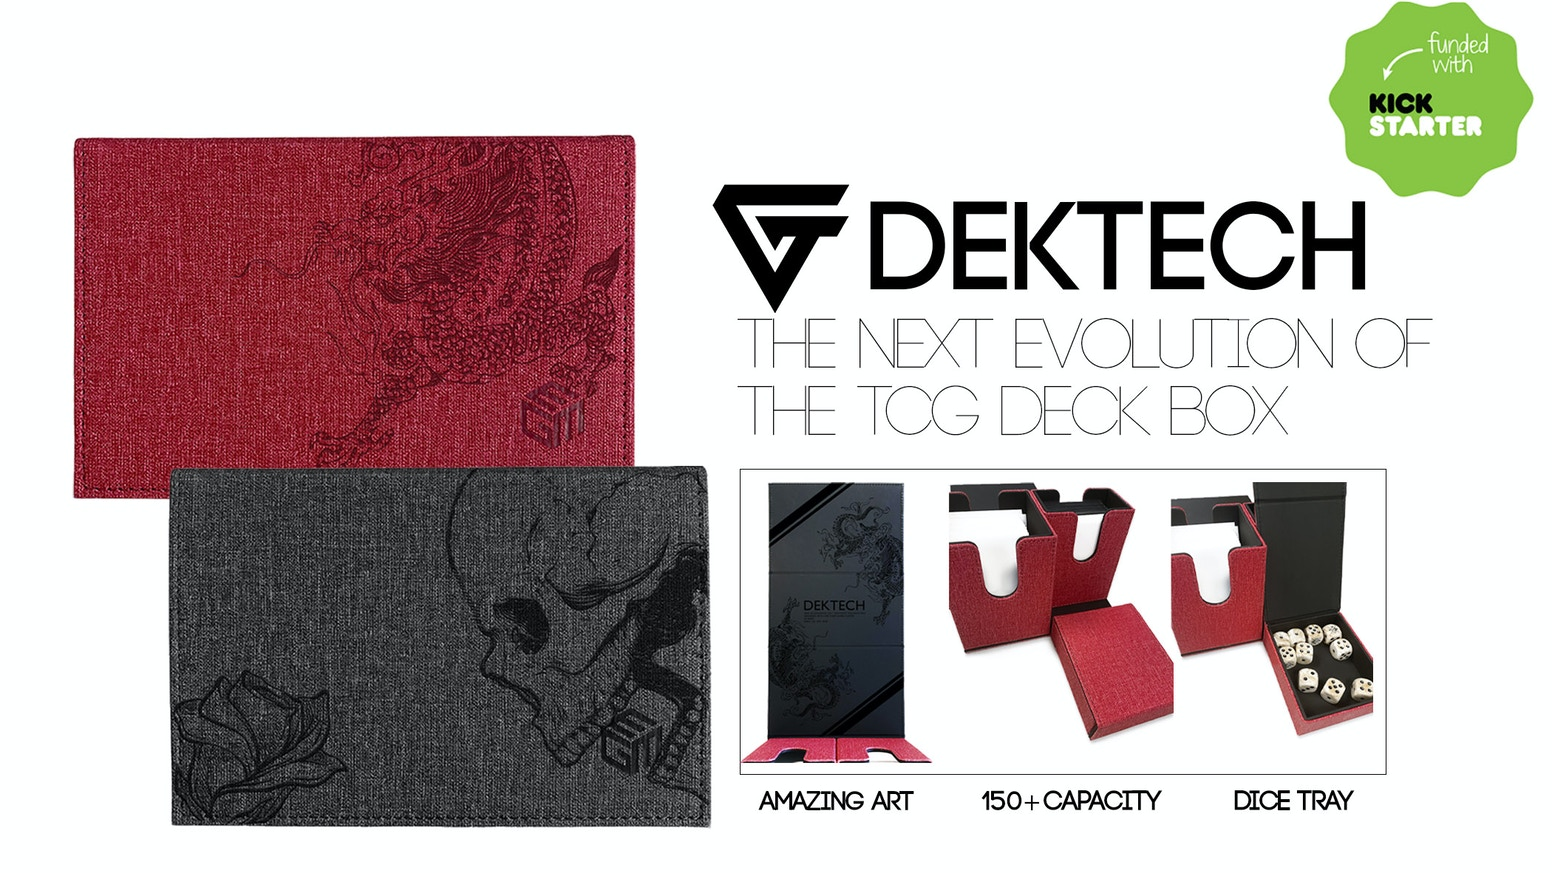 We have creating the top deck box for all trading card games. Our deck box features capacity of 150+ cards, dice tray, and amazing art.